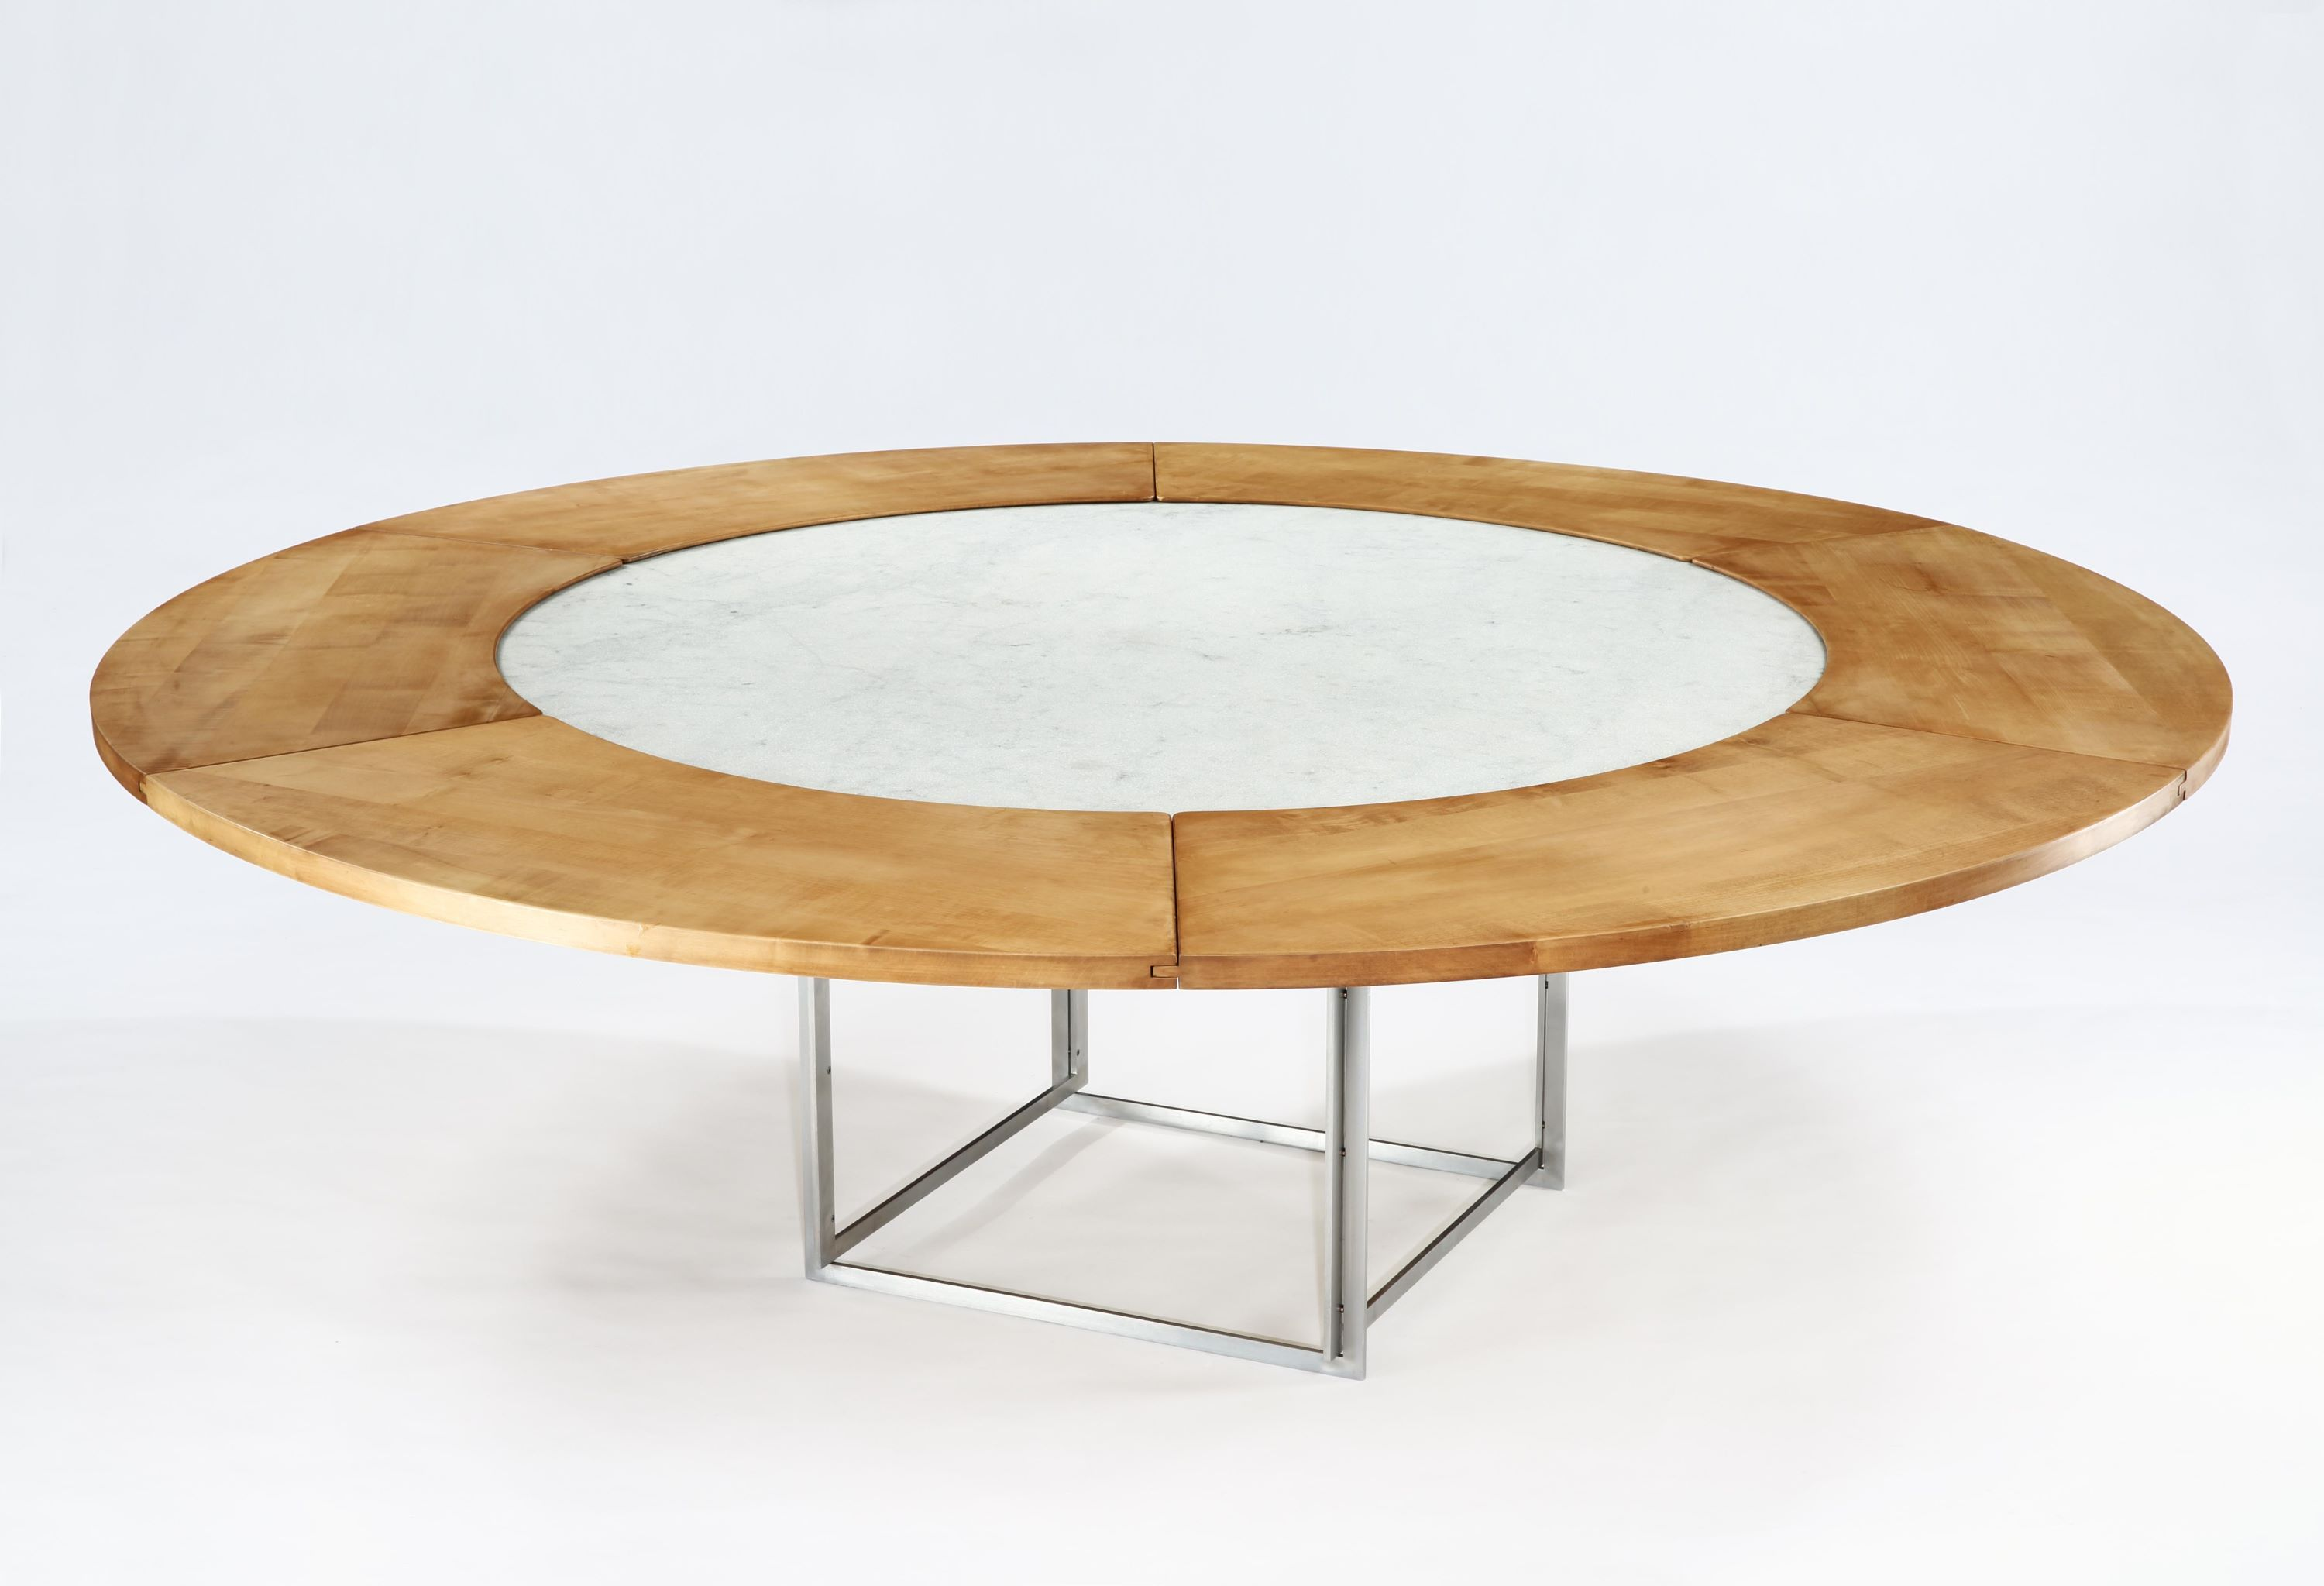 The PK-54 Dining Table by Poul Kjærholm | Rose Uniacke